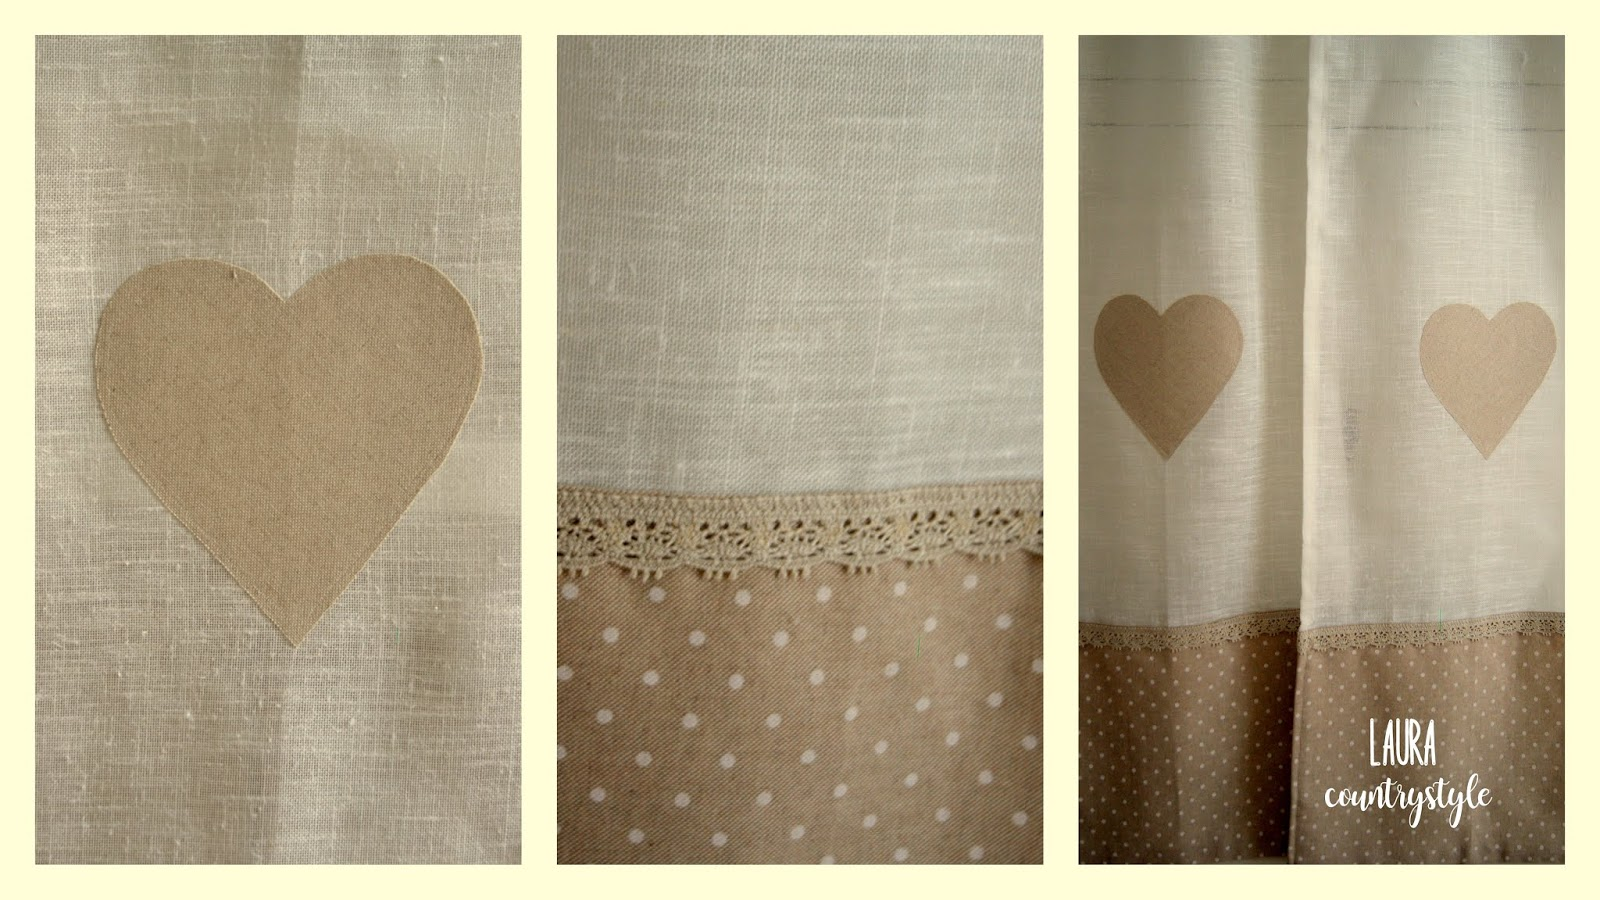 Laura country style: Diy: tende shabby chic